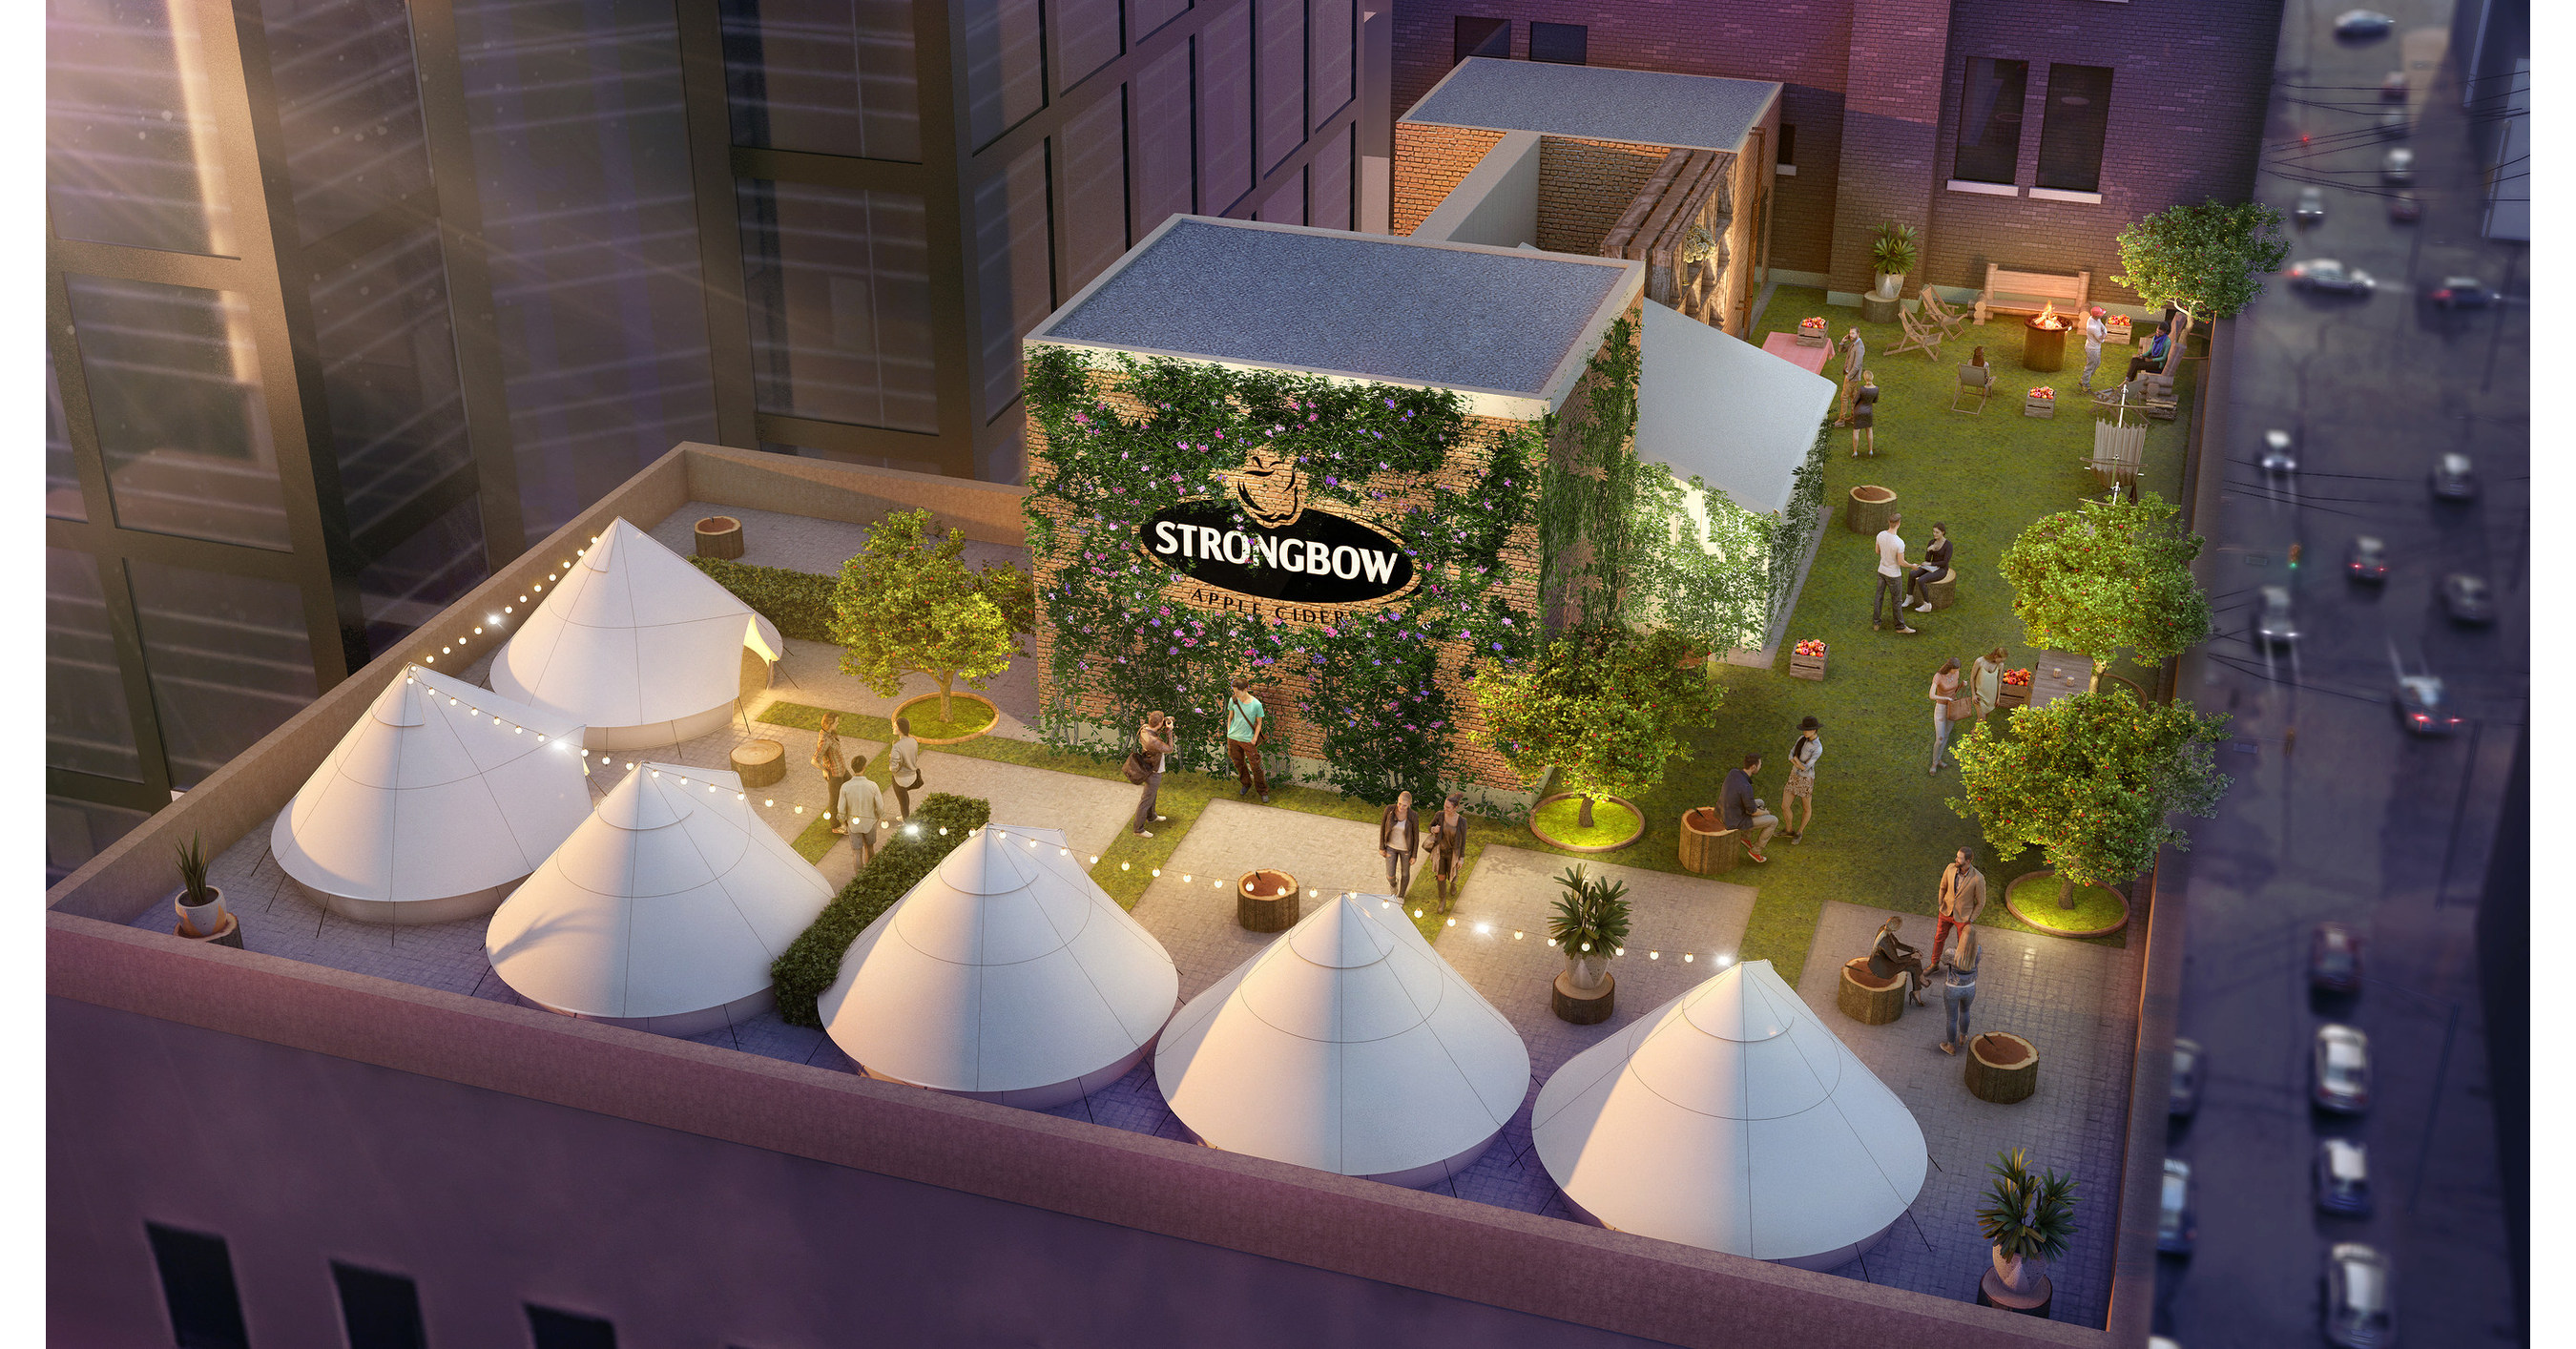 Strongbow's Orchard Glampground Brings Rooftop Camping To Toronto photo